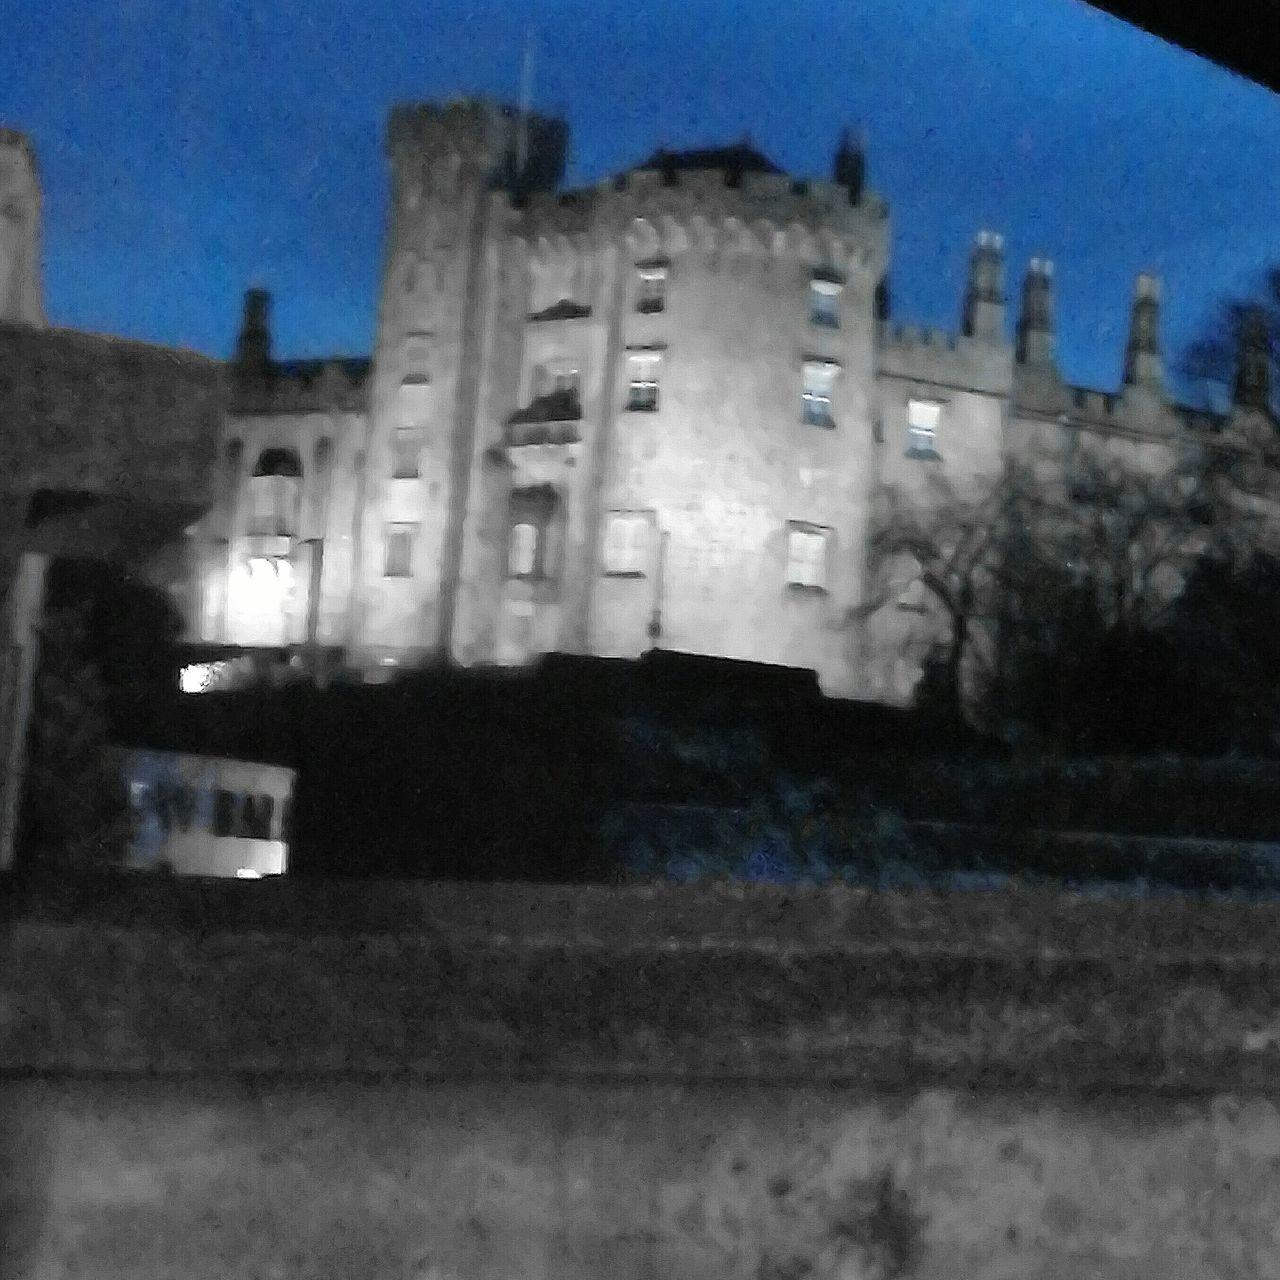 Kilkenny Castle, Kilkenny, Ireland Architecture Built Structure Building Exterior Sky Illuminated Outdoors No People Blue Clear Sky Day Nature